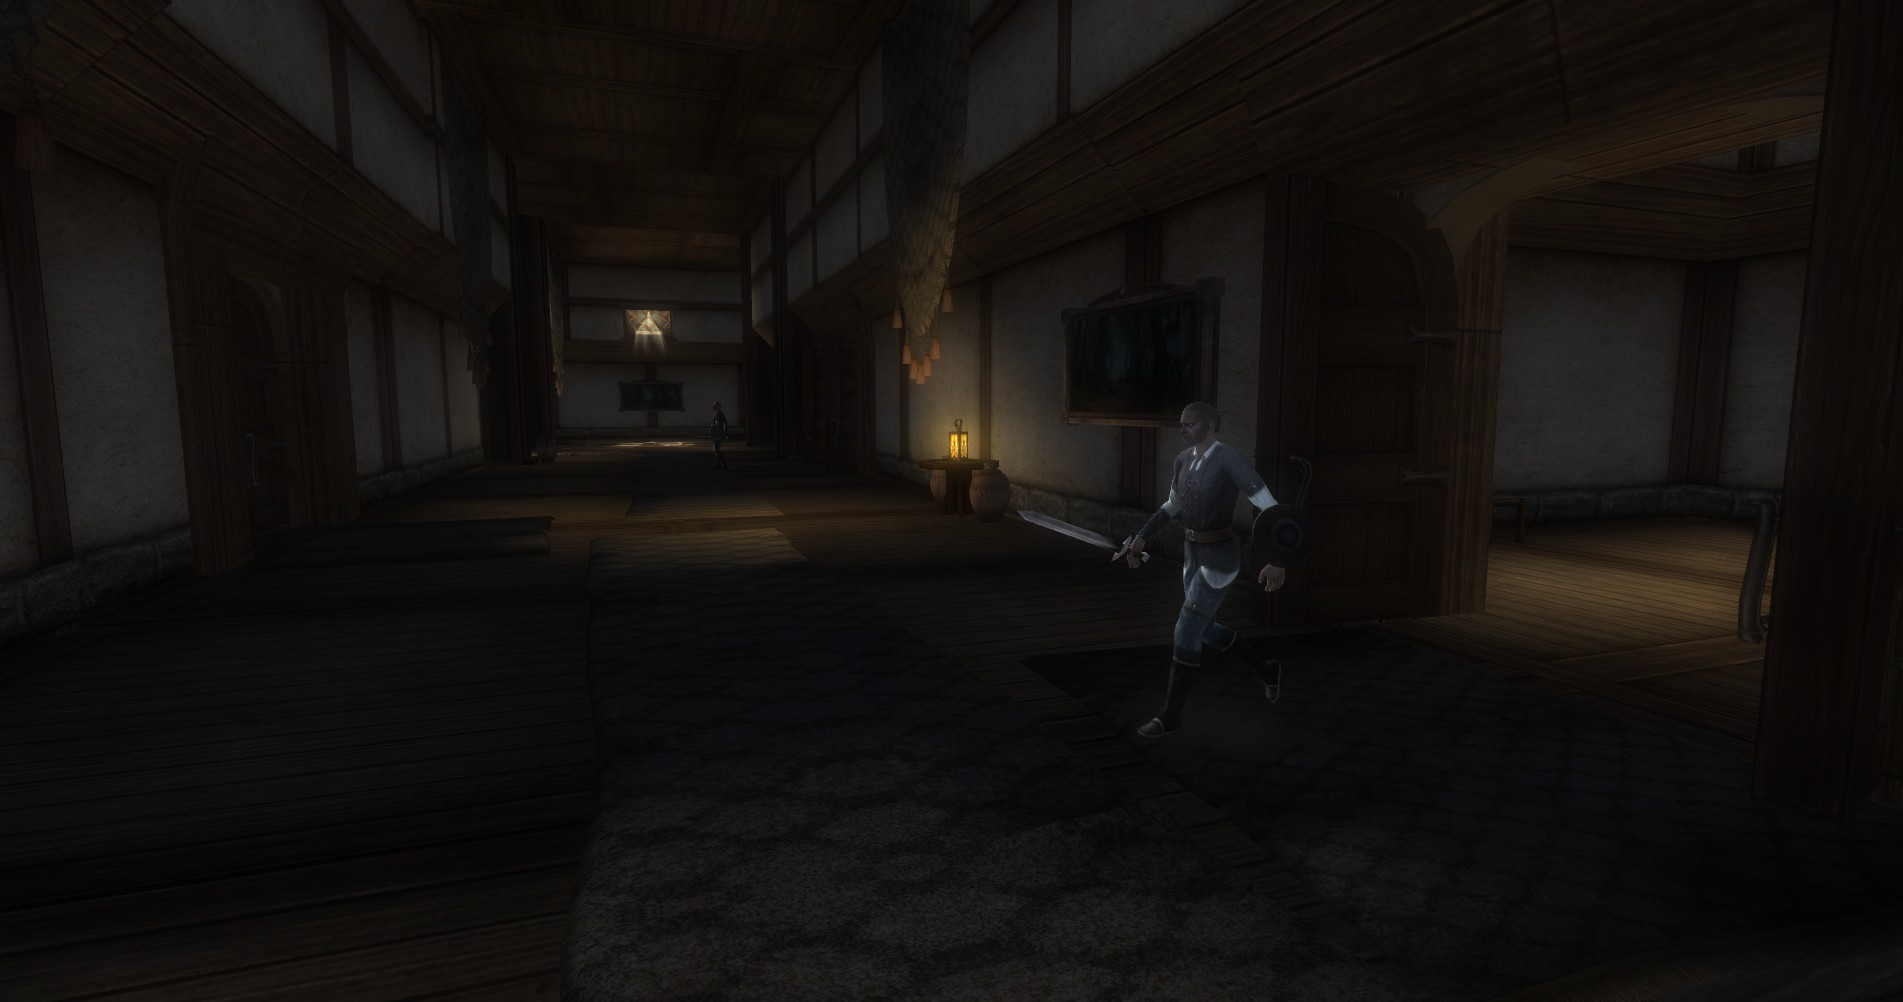 A Stay At The Inn Quest Walkthrough And Guide